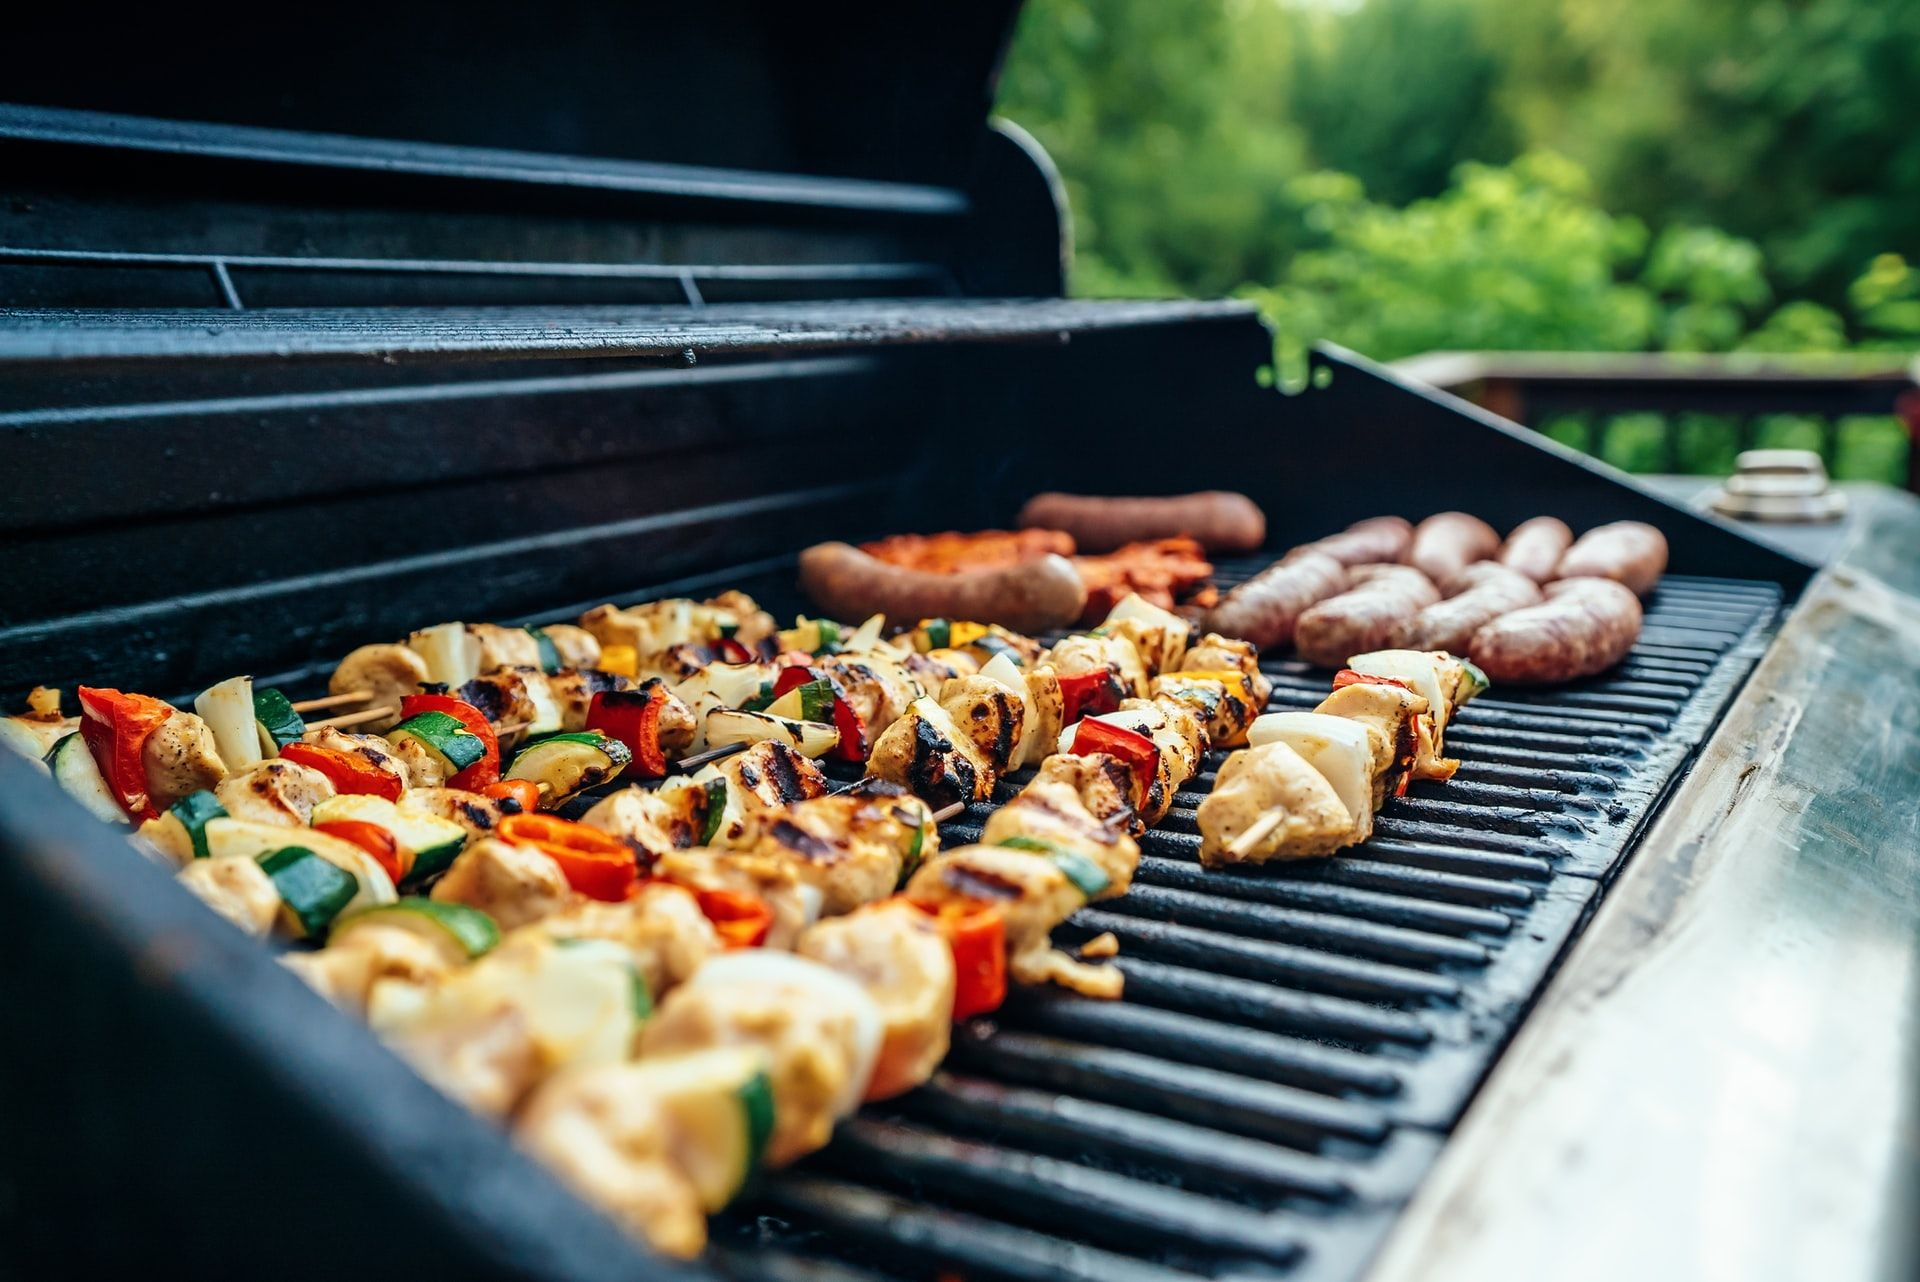 Food on a BBQ for a backyard party